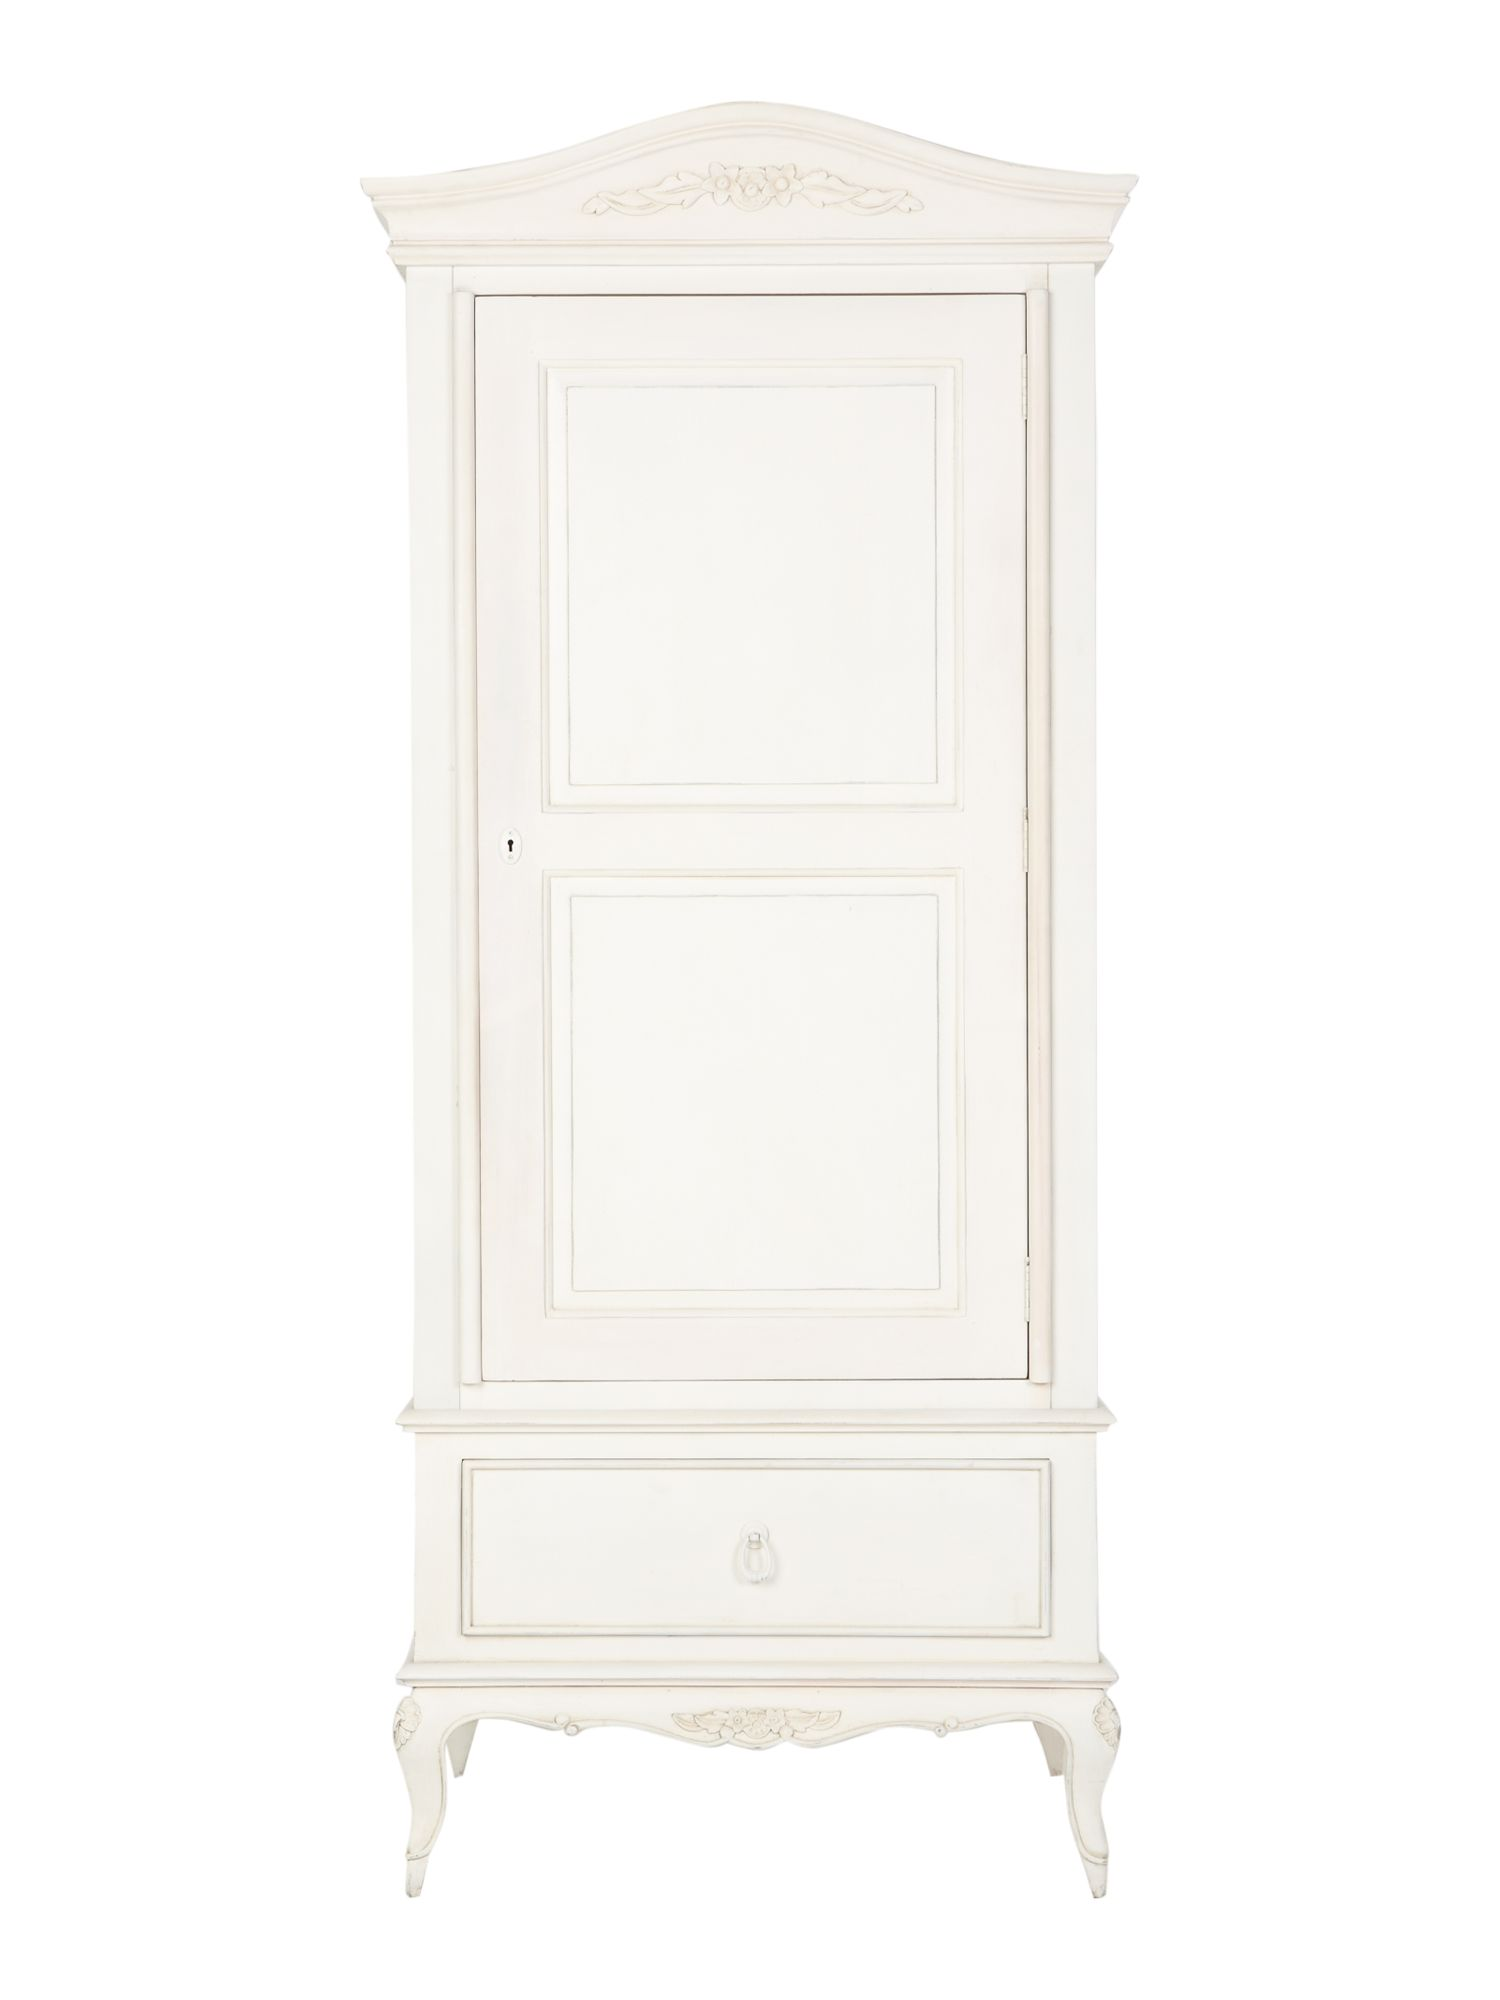 Shabby Chic Primrose Single Wardrobe With Drawer - House of Fraser